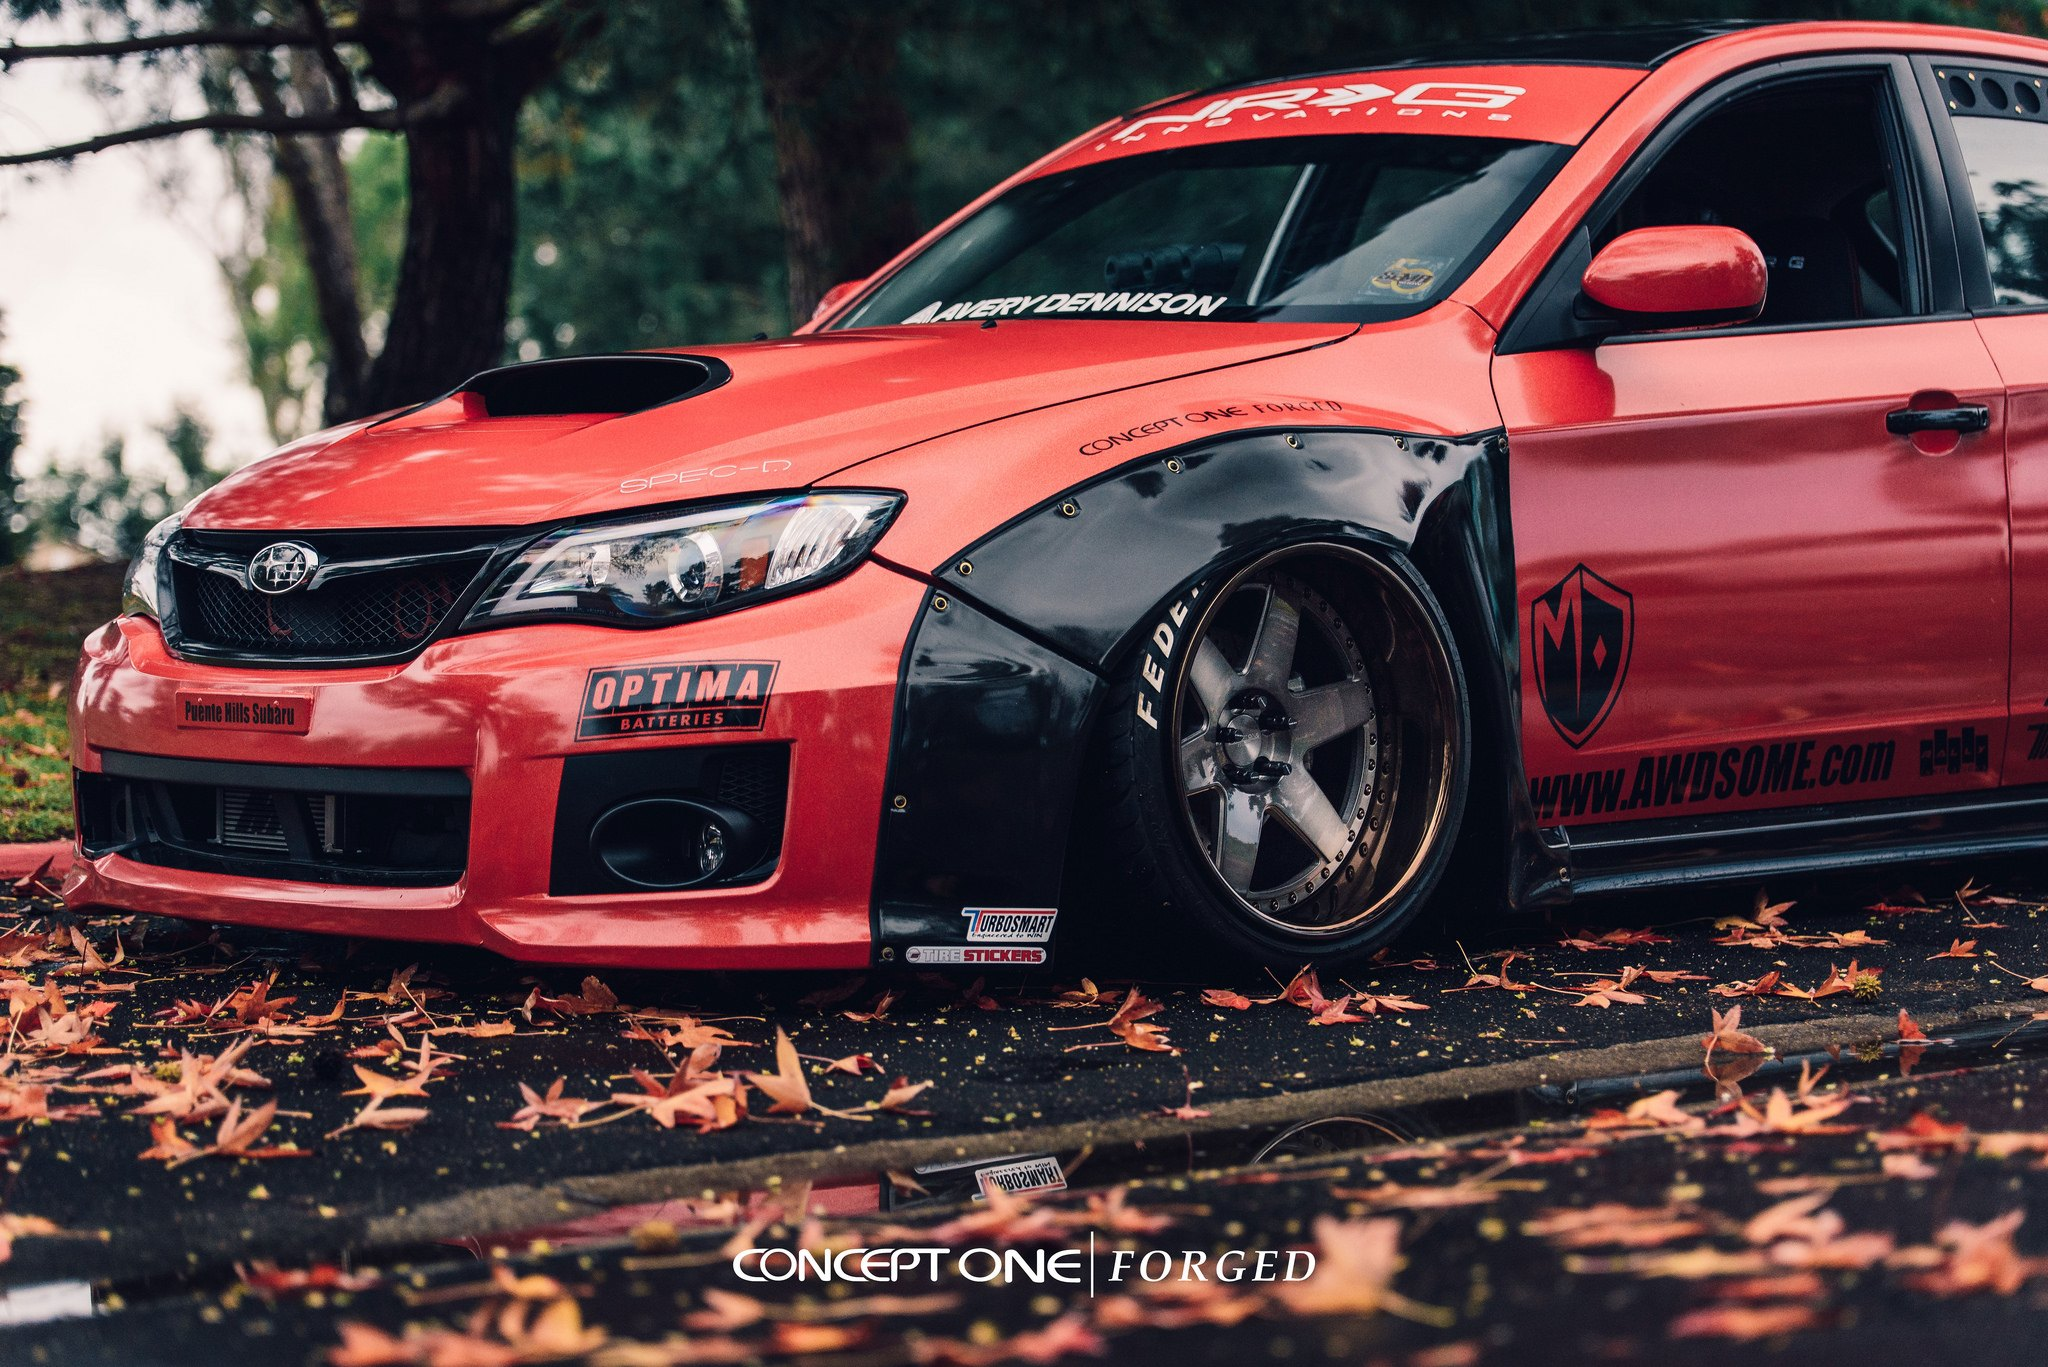 Stanced Car Wallpaper Hd Heavily Modified Custom Red Subaru Wrx On Forged Rims